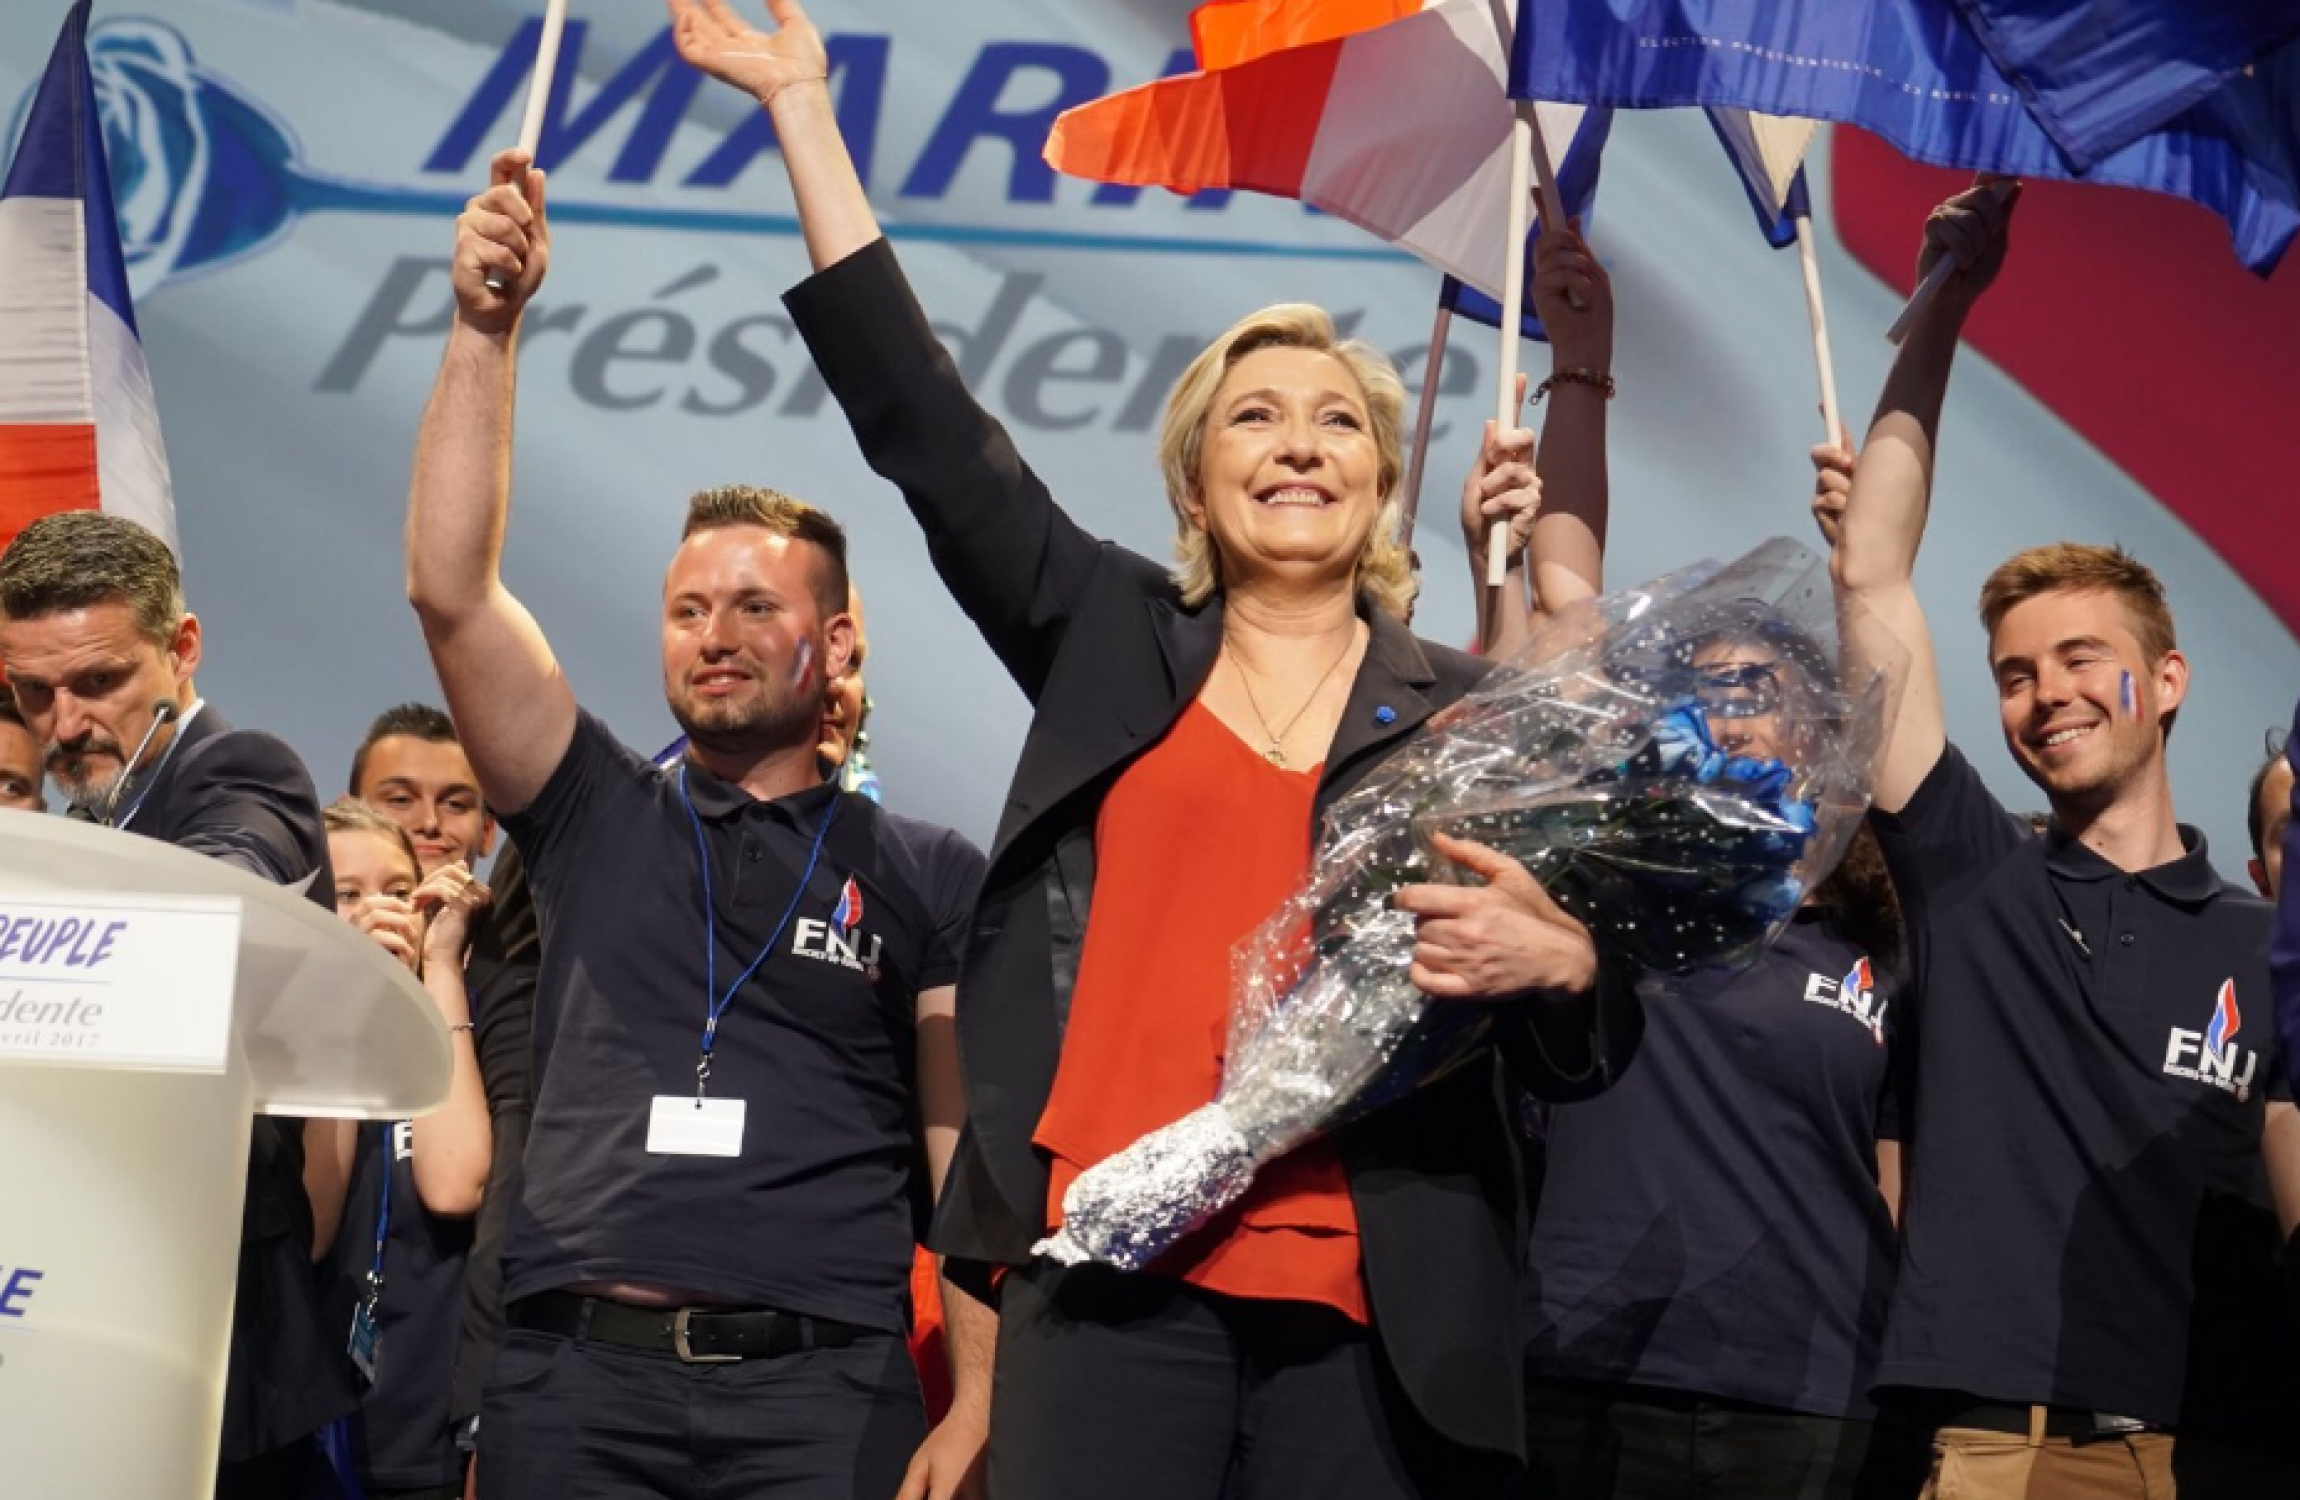 Meet the main candidates hoping to be the next president of France